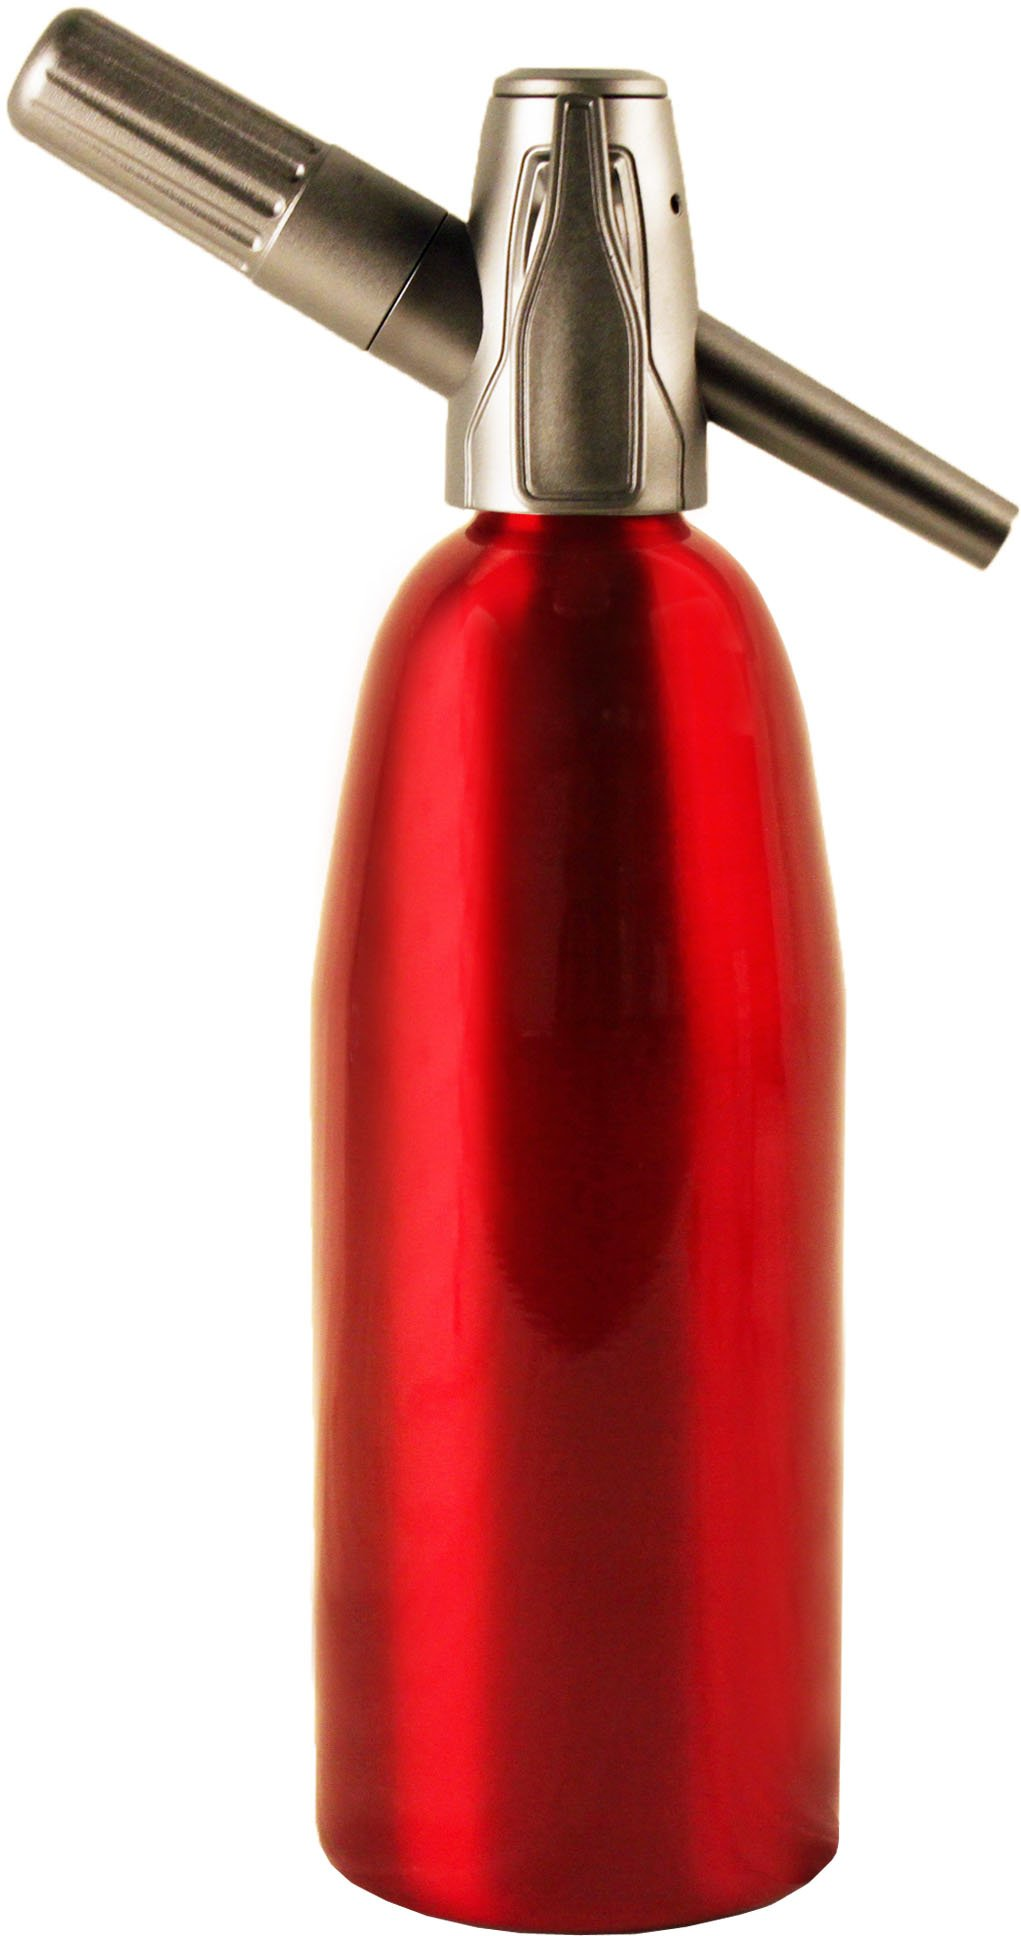 Sparkle Soda Siphon-Red by Creamright